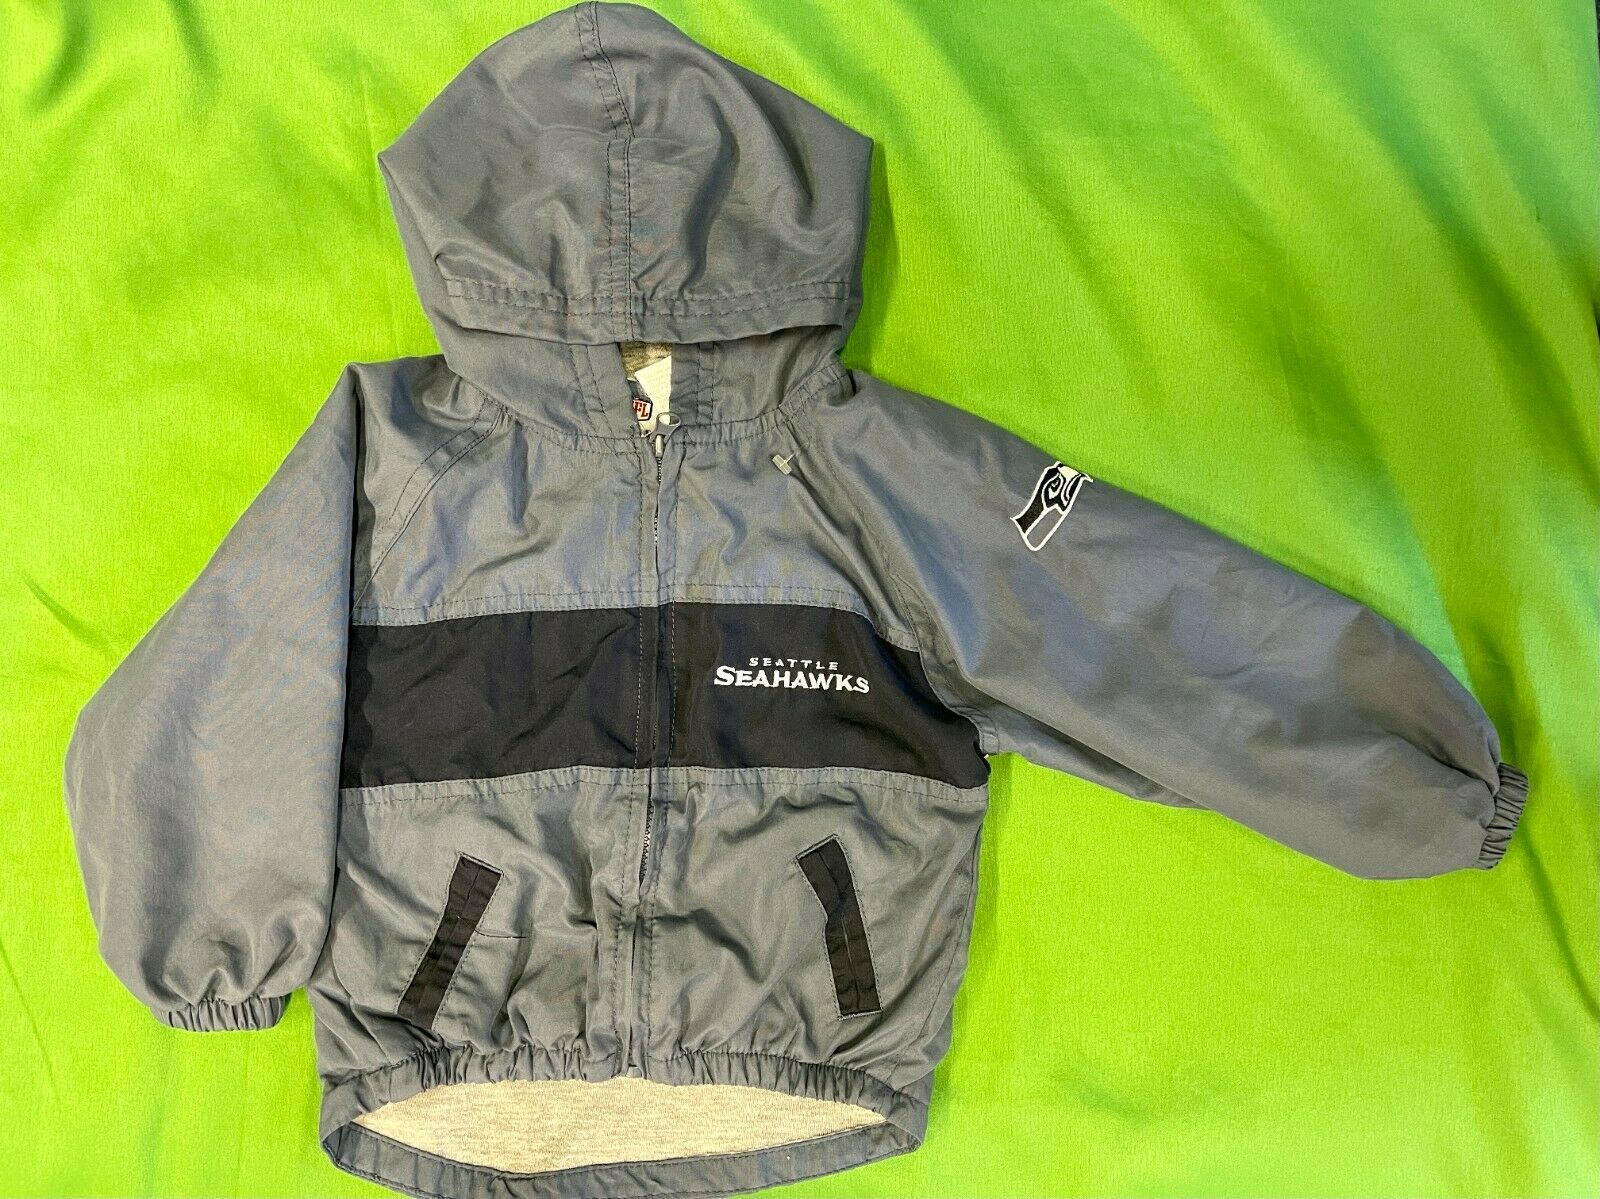 B623/160 NFL Seattle Seahawks Toddler Windbreaker Jacket 24 months